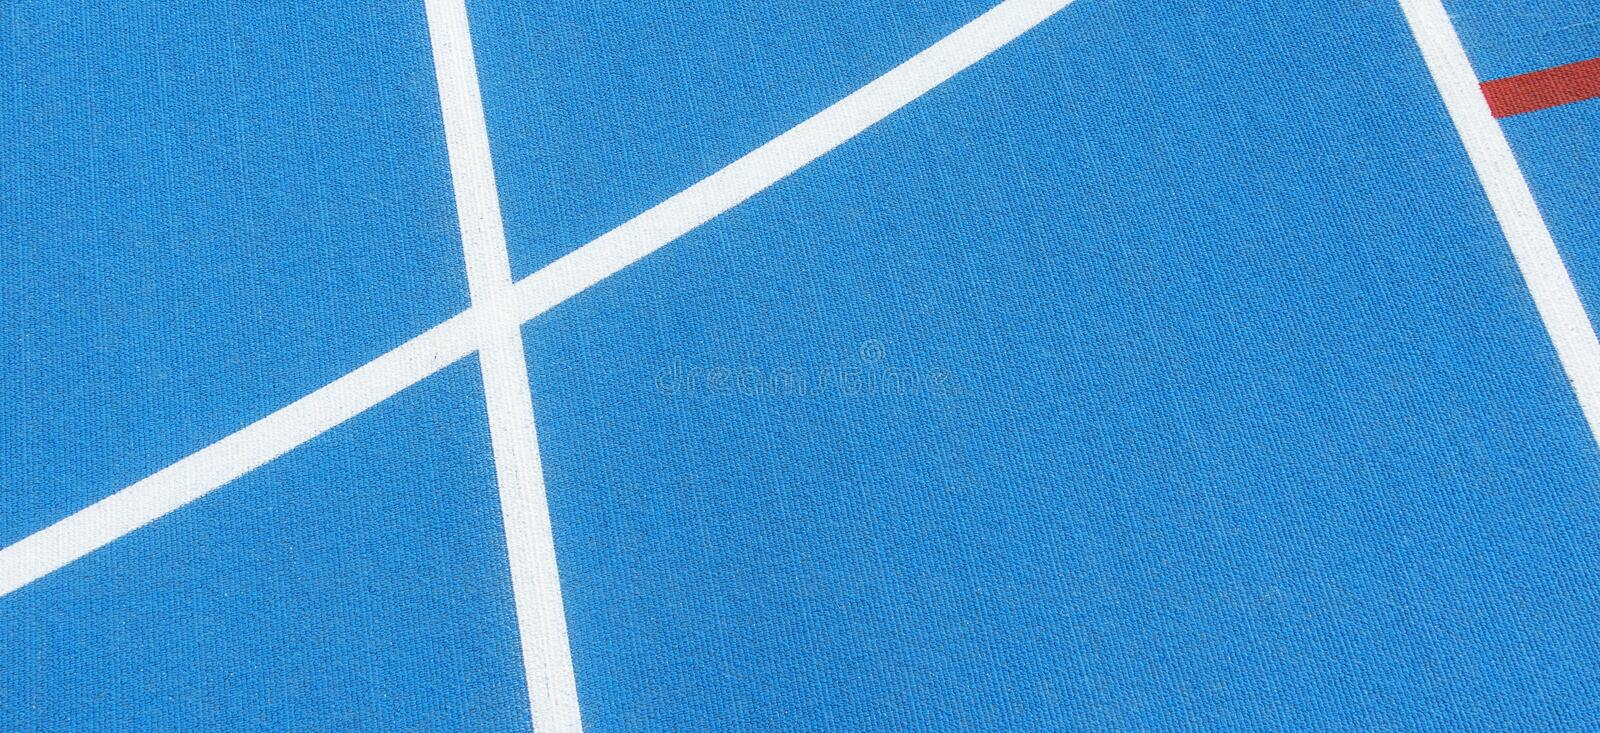 Sport background. Blue running track with white lines in sport stadium. Top view. Sport background. Blue running track with white lines in sport stadium stock photos